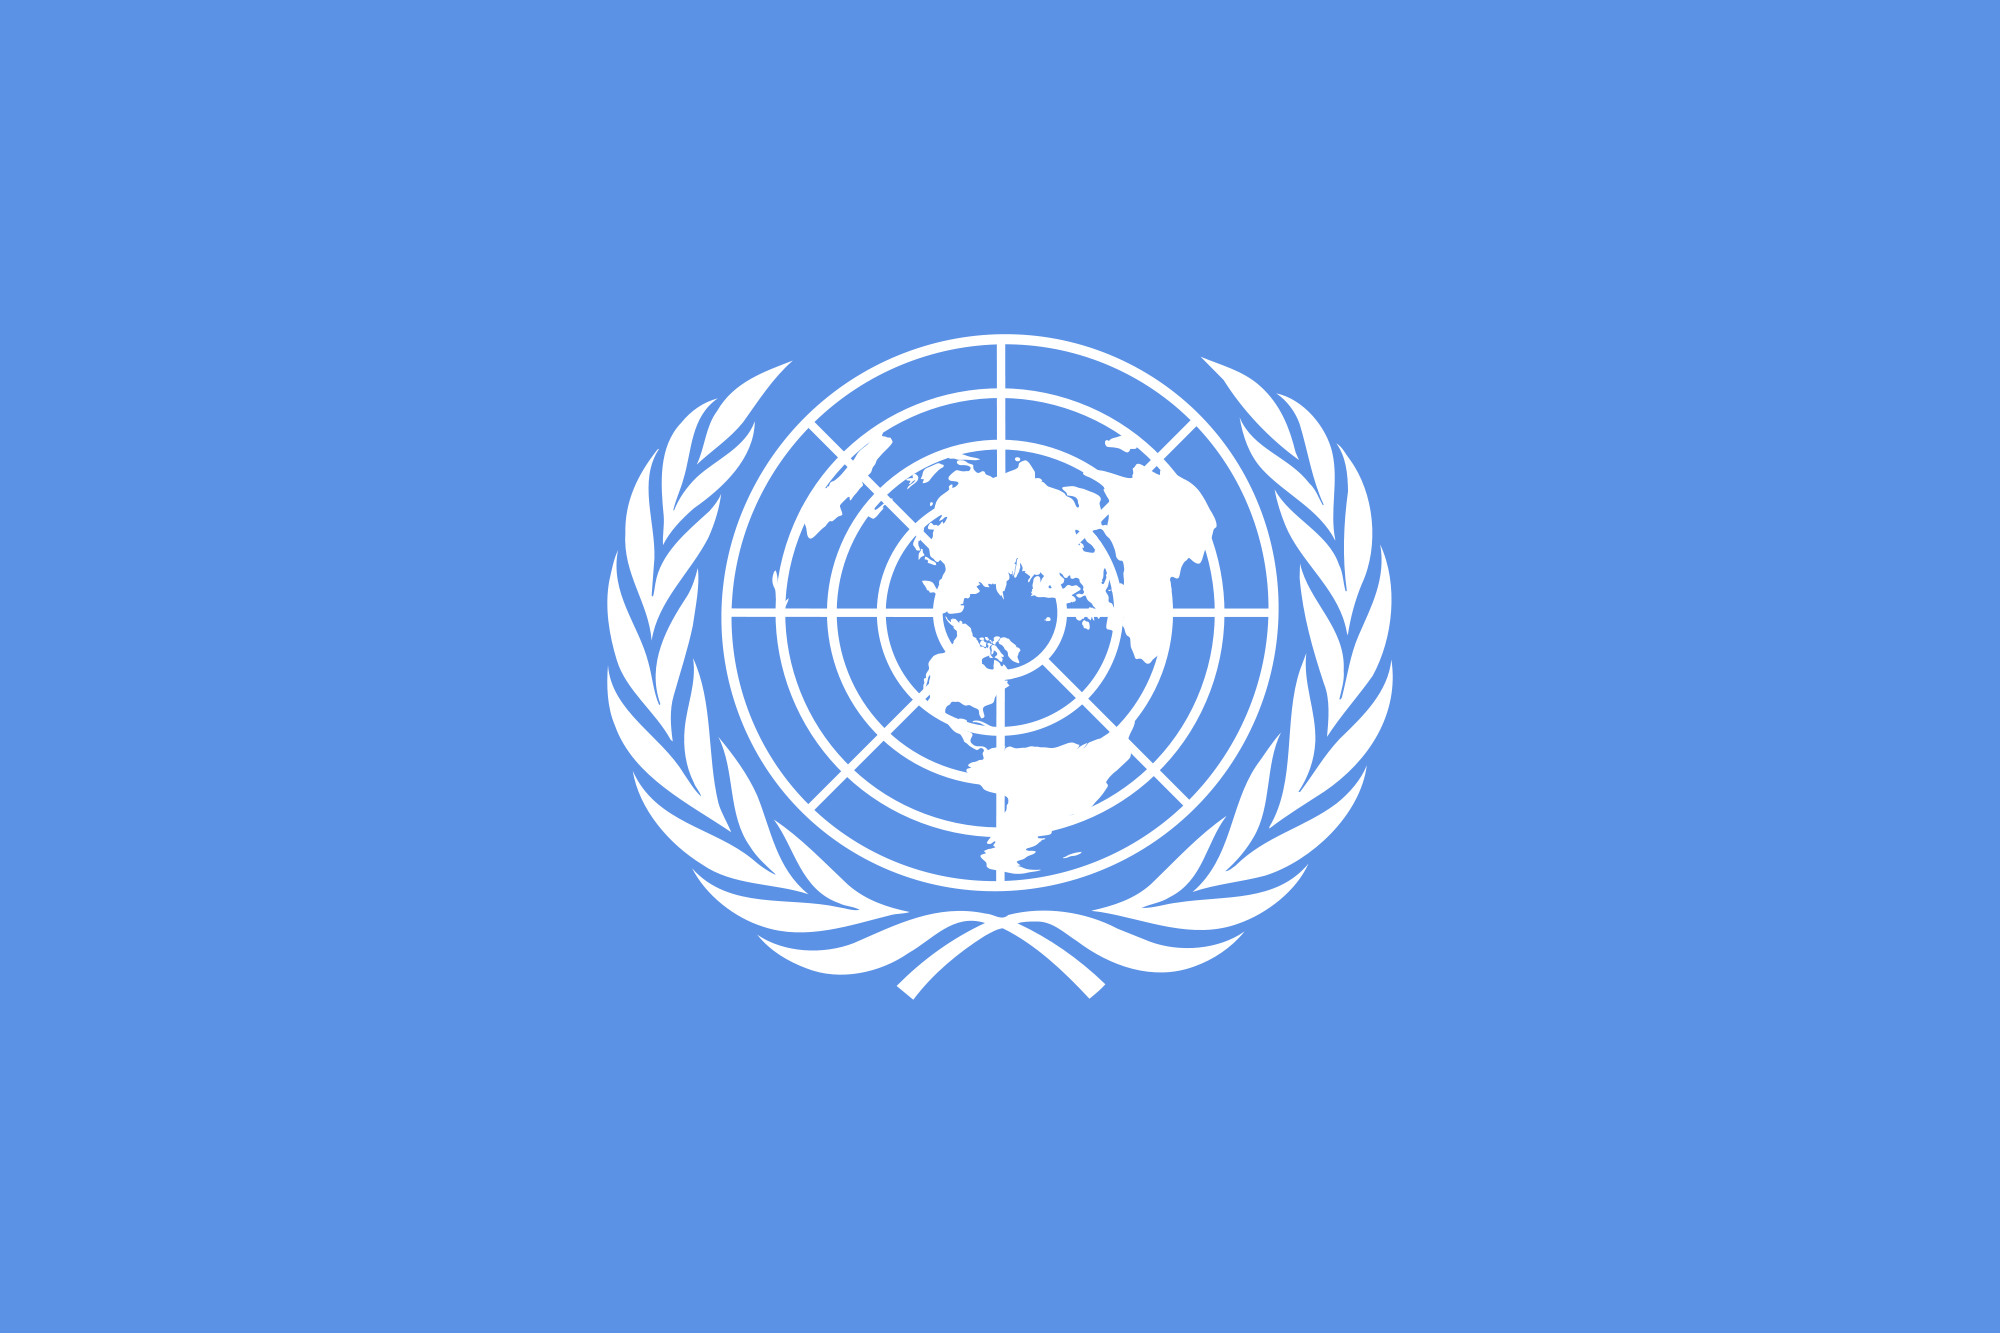 UNECE logo. UNECE makes use of Scaffolding for Confluence.